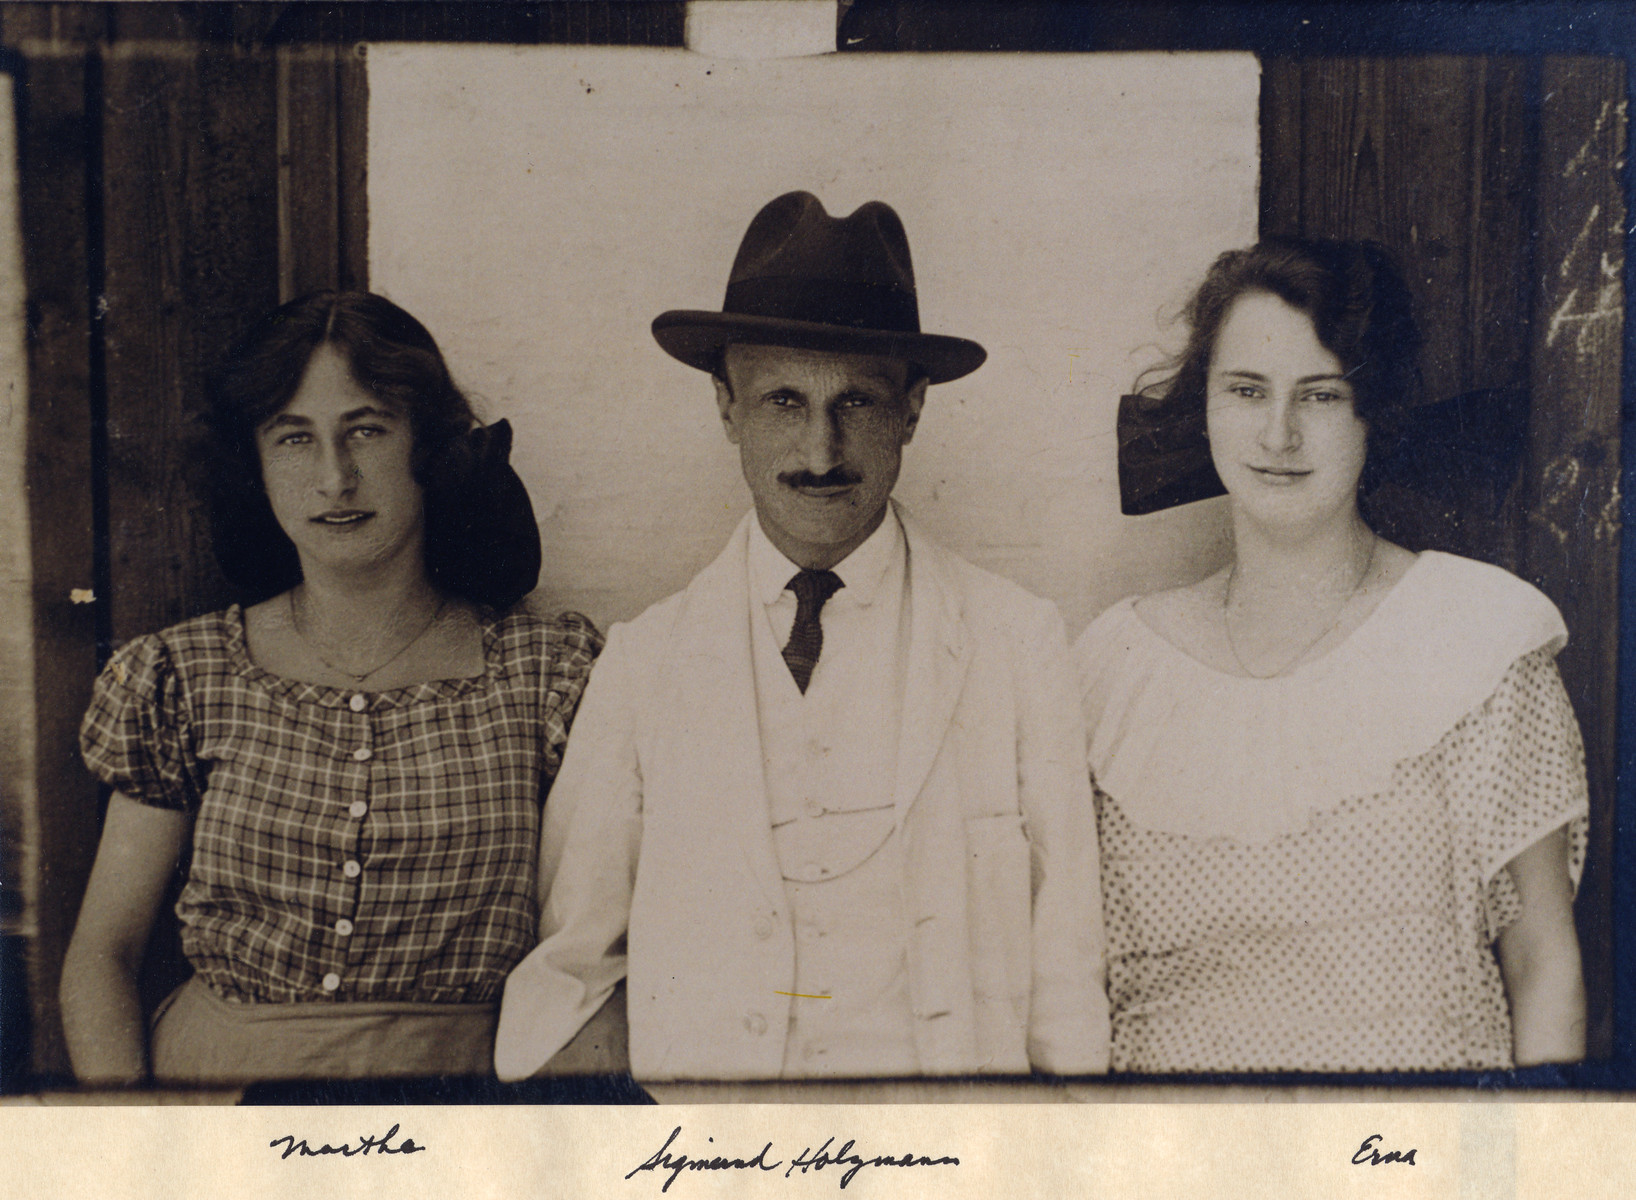 Sigmund Holzmann and two of his daughters, Martha and Erna.